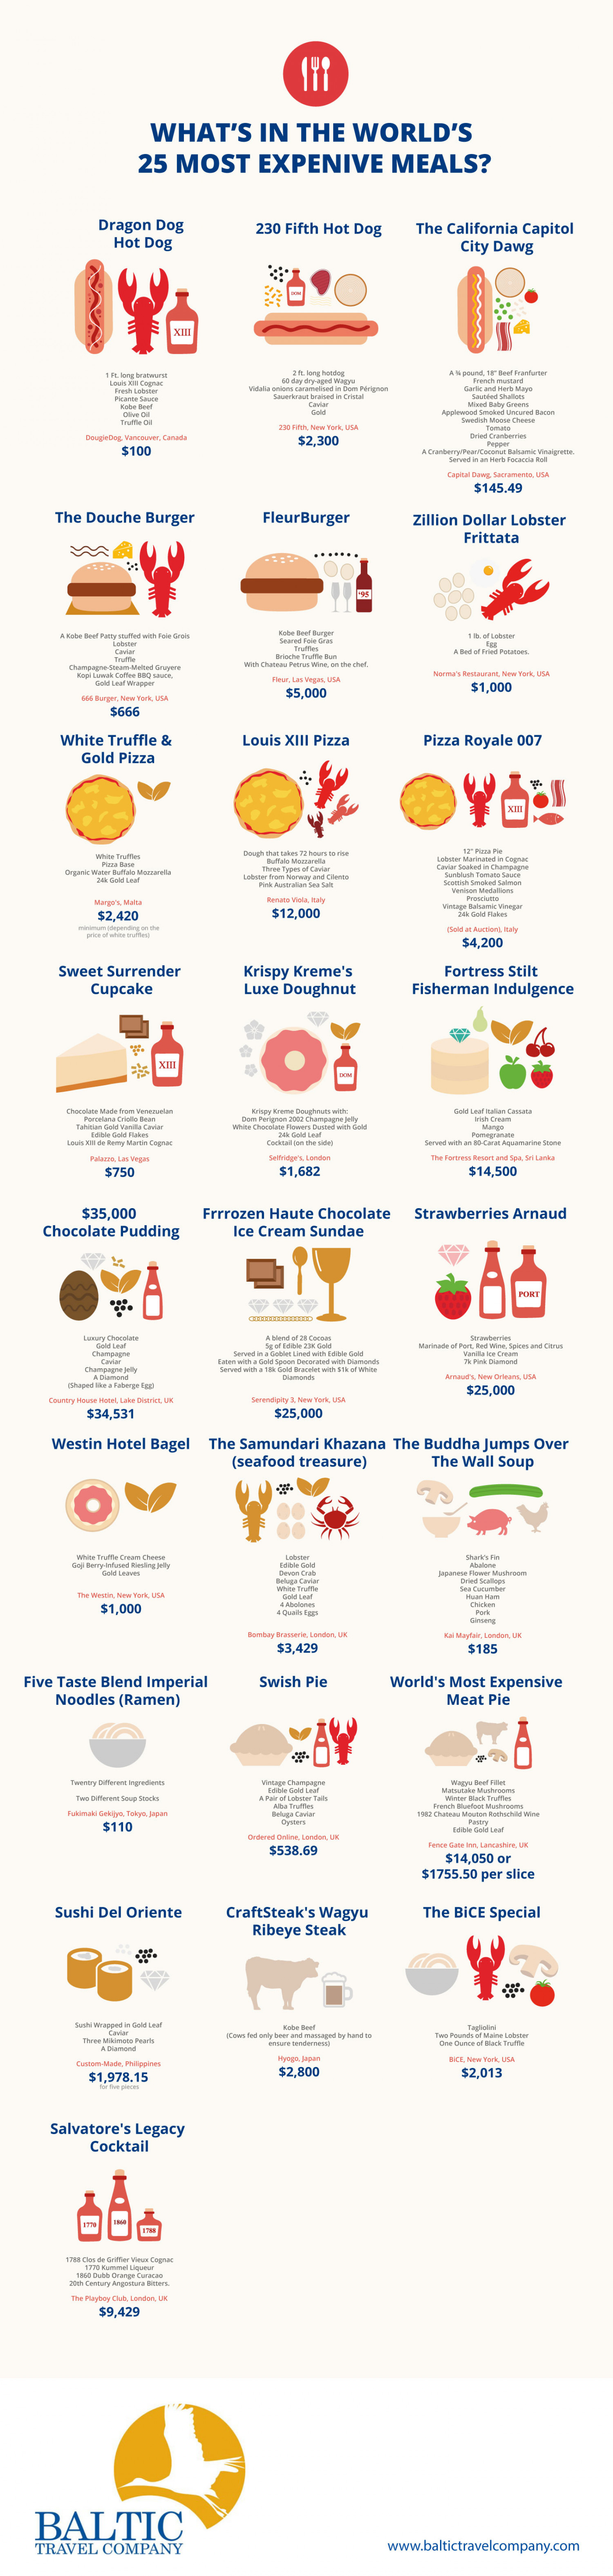 What's in the World's 25 Most Expensive Meals? Infographic